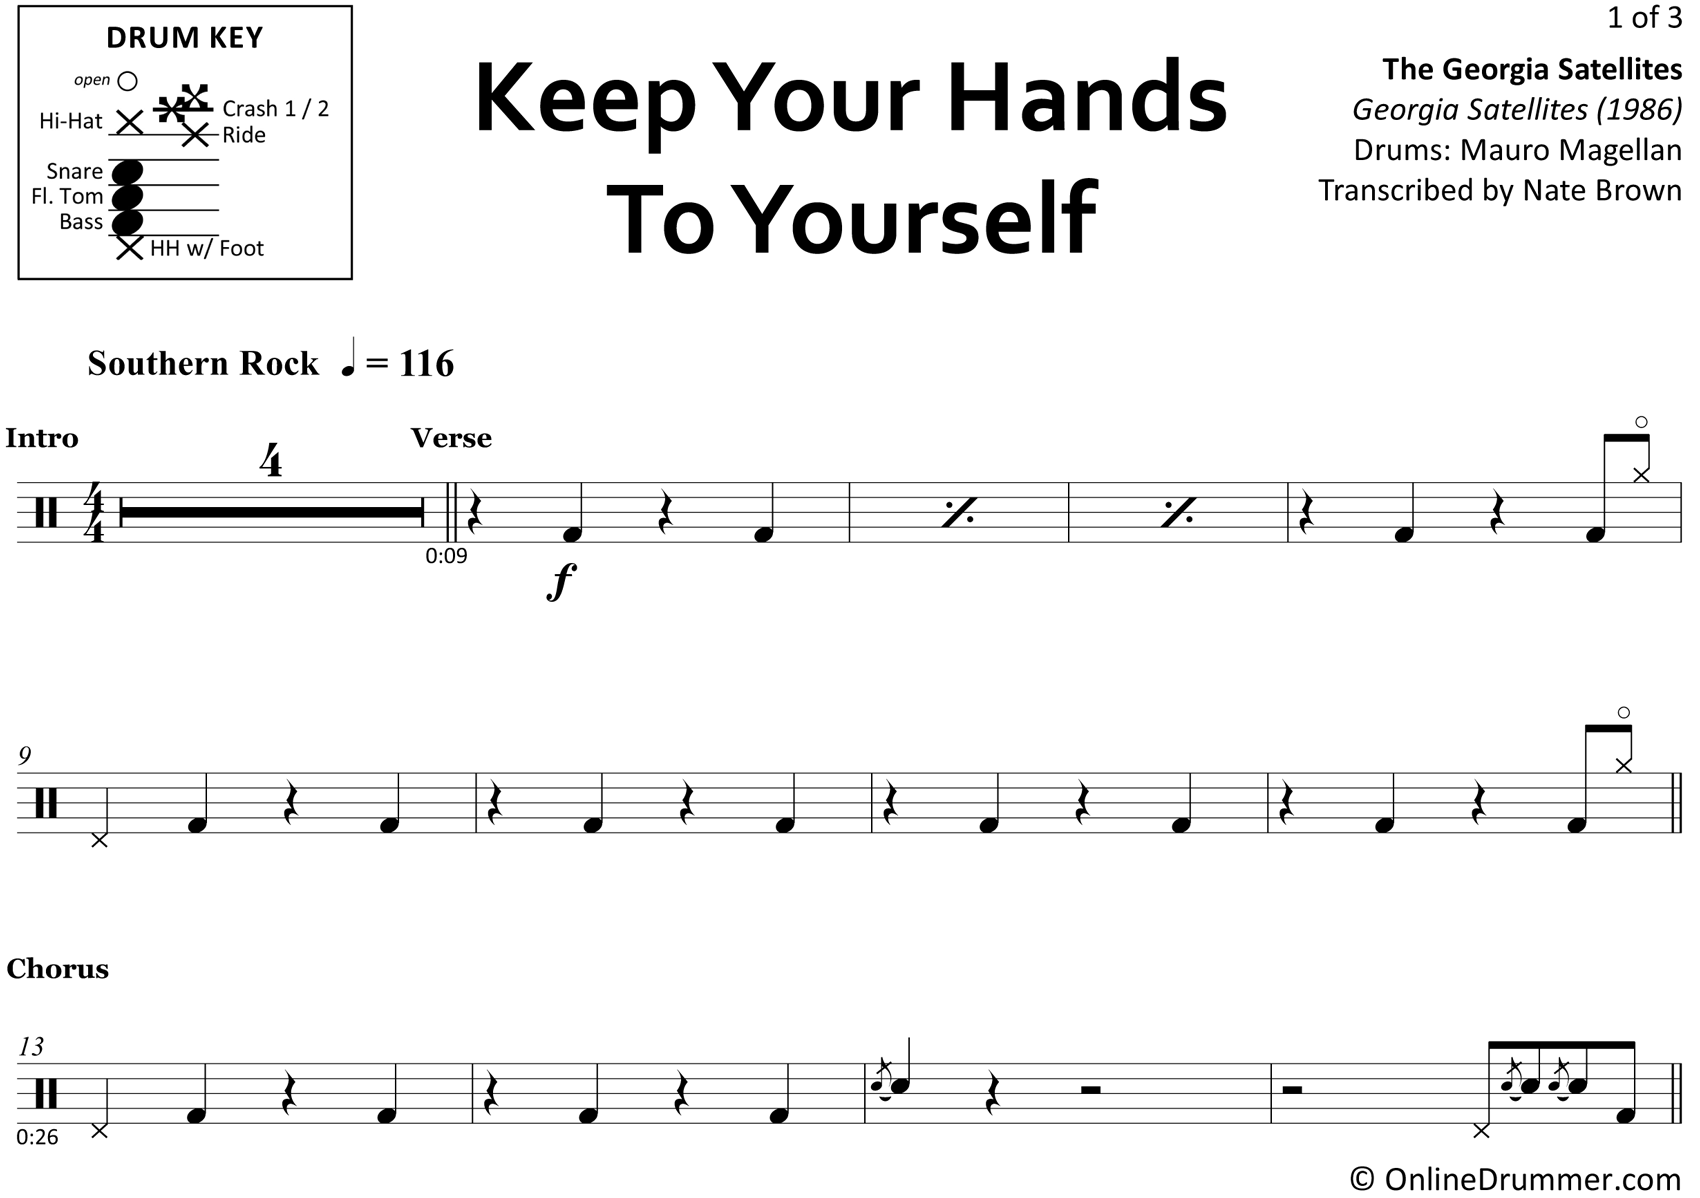 Keep Your Hands To Yourself - The Georgia Satellites - Drum Sheet Music